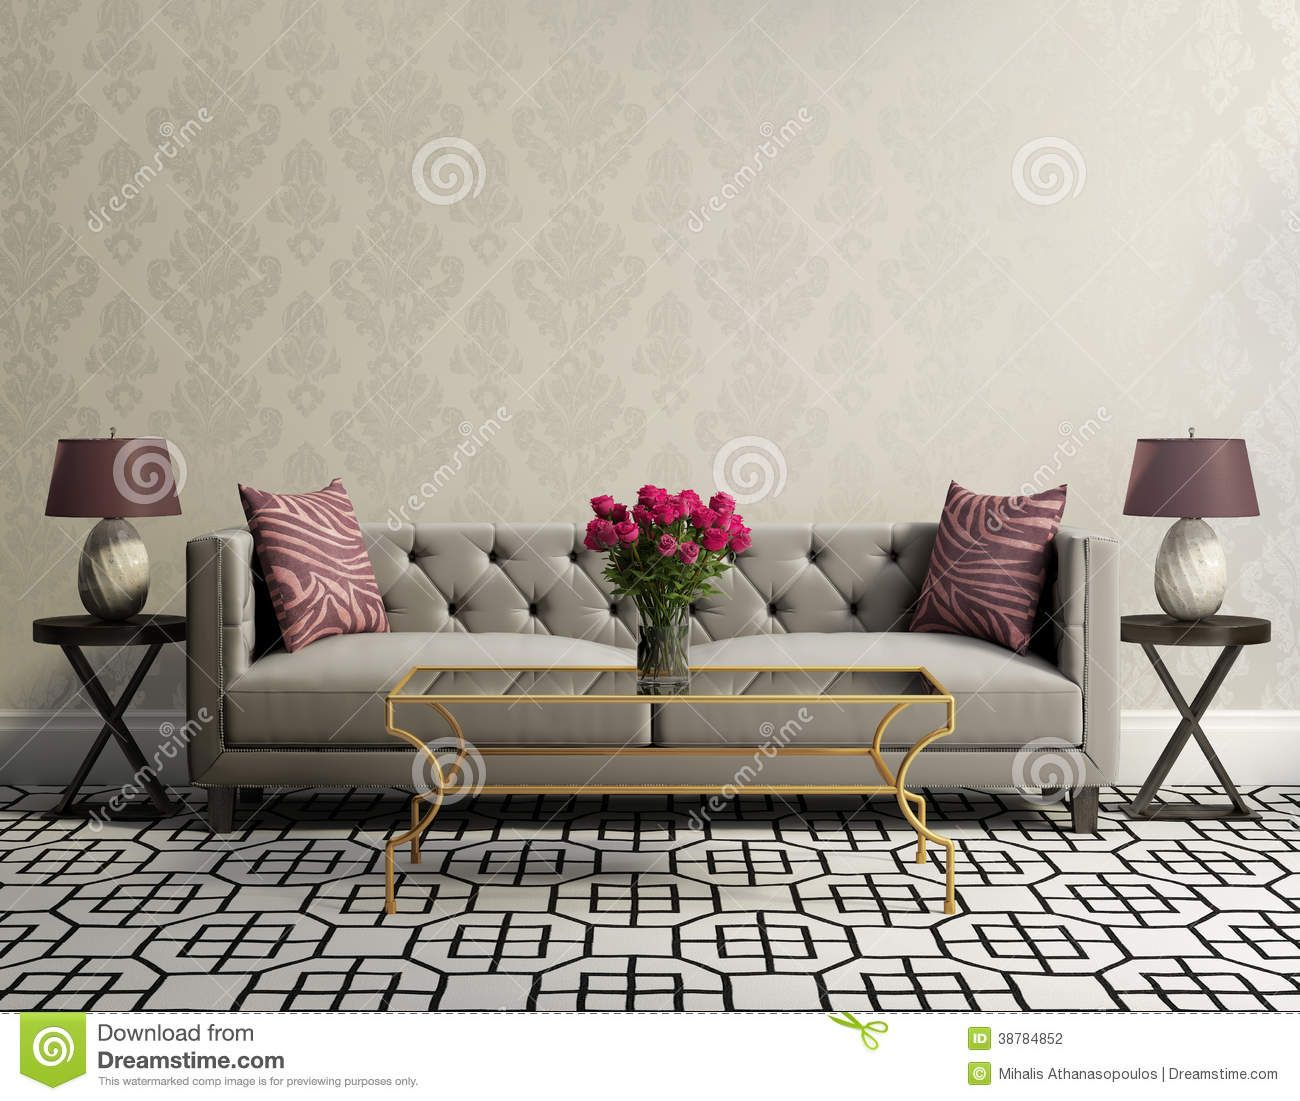 Vintage Classic Elegant Living Room With Grey Velvet Sofa Side Tables And A Vase